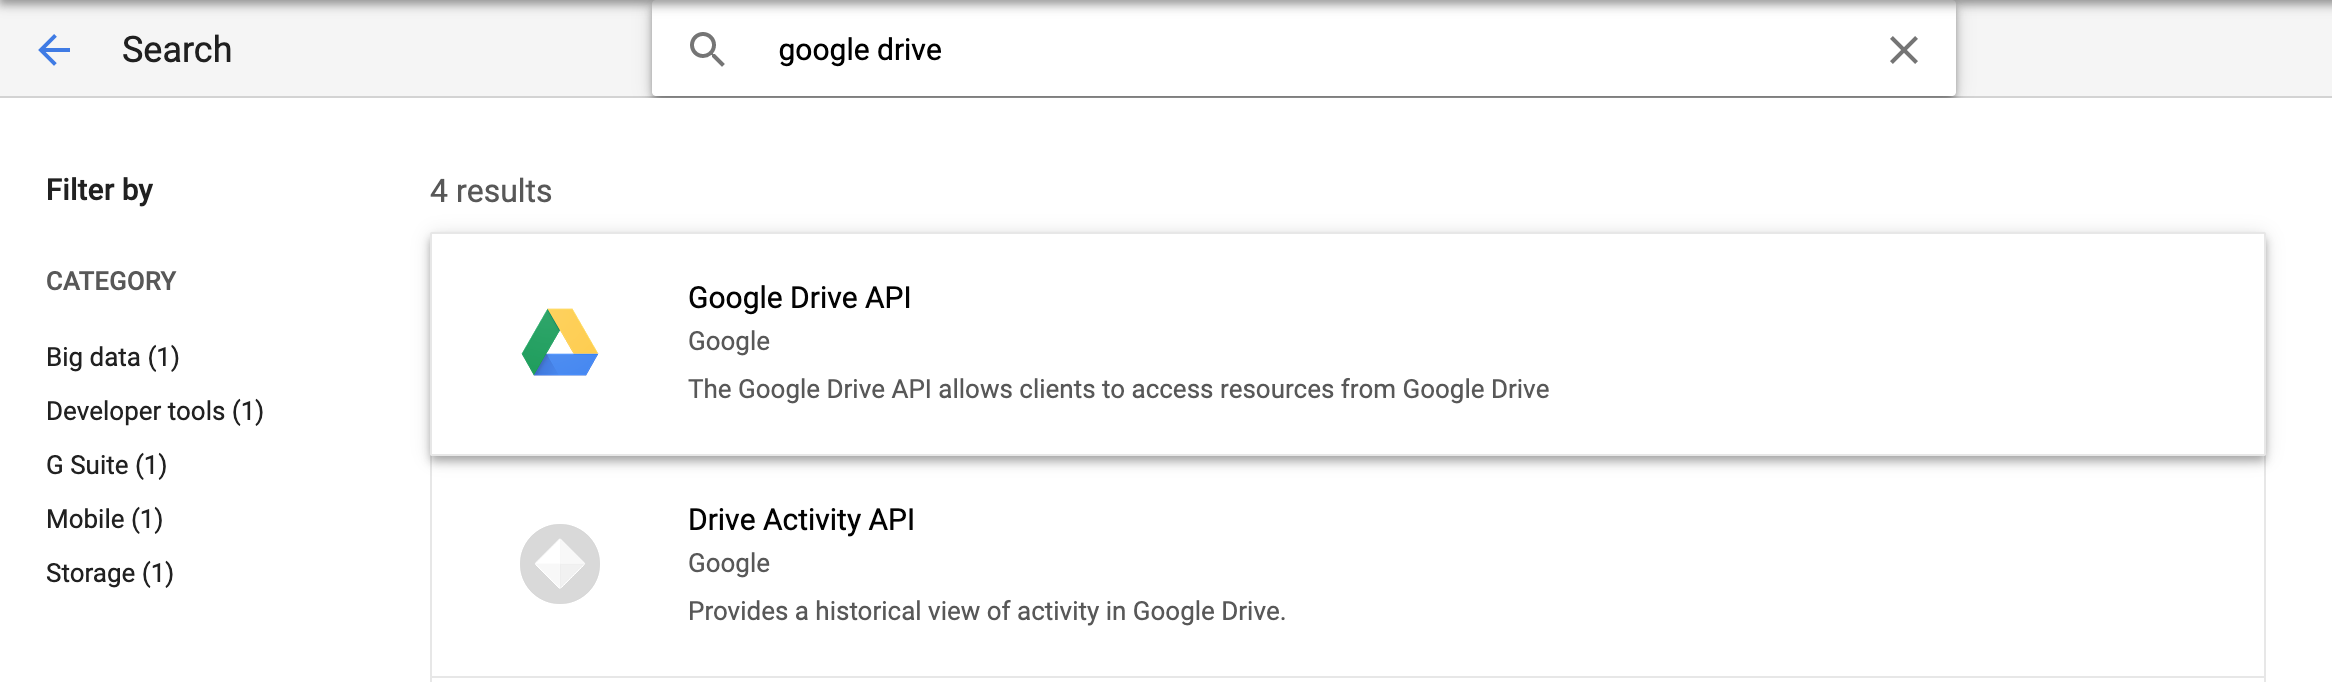 How to Call Google Drive API using curl command with C